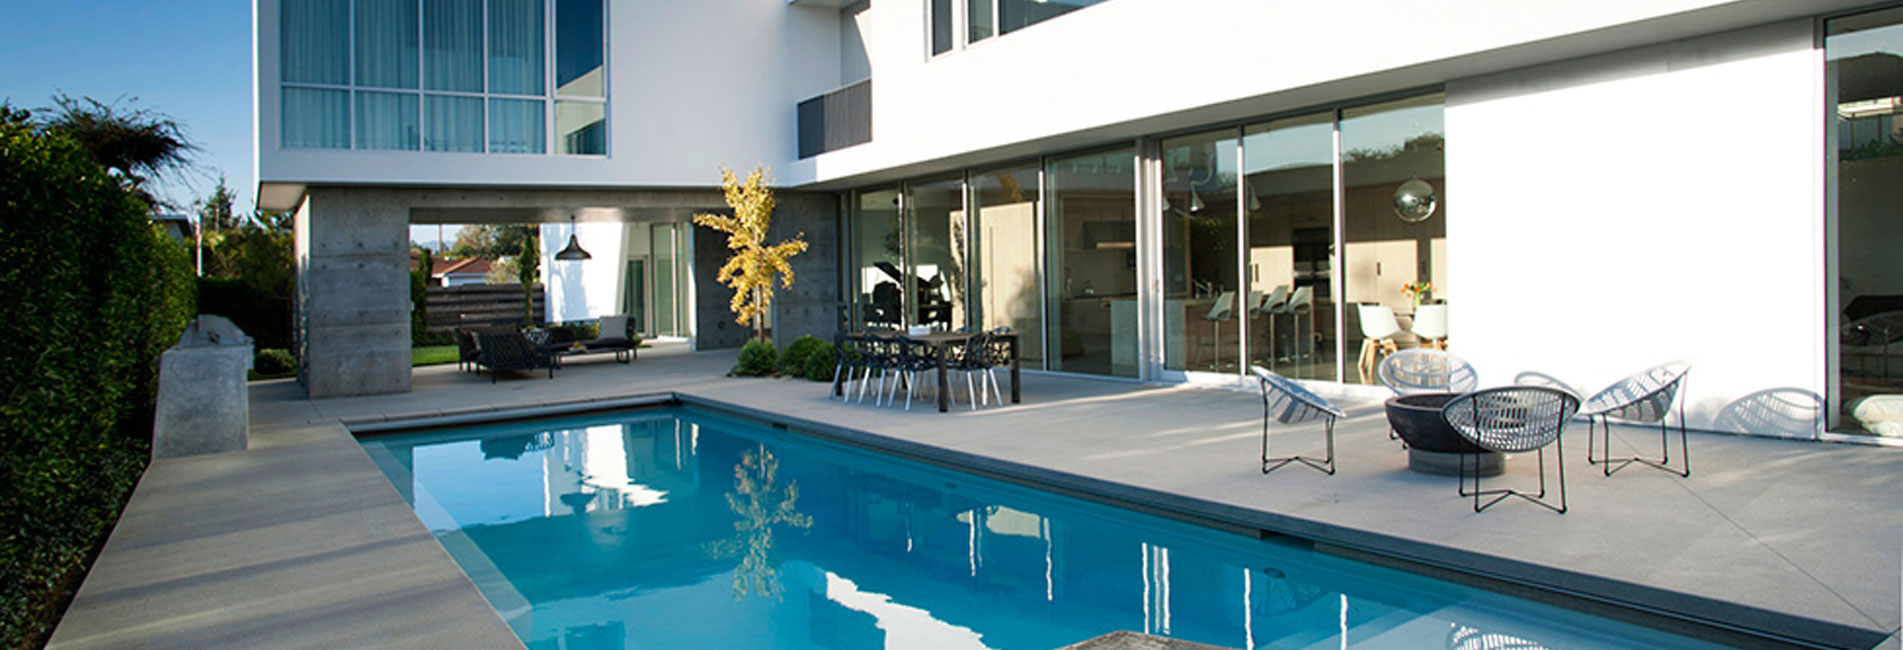 Domestic Building Certification Coomera, Building Approvals Mermaid Beach, Building Certification Consultants Broadbeach